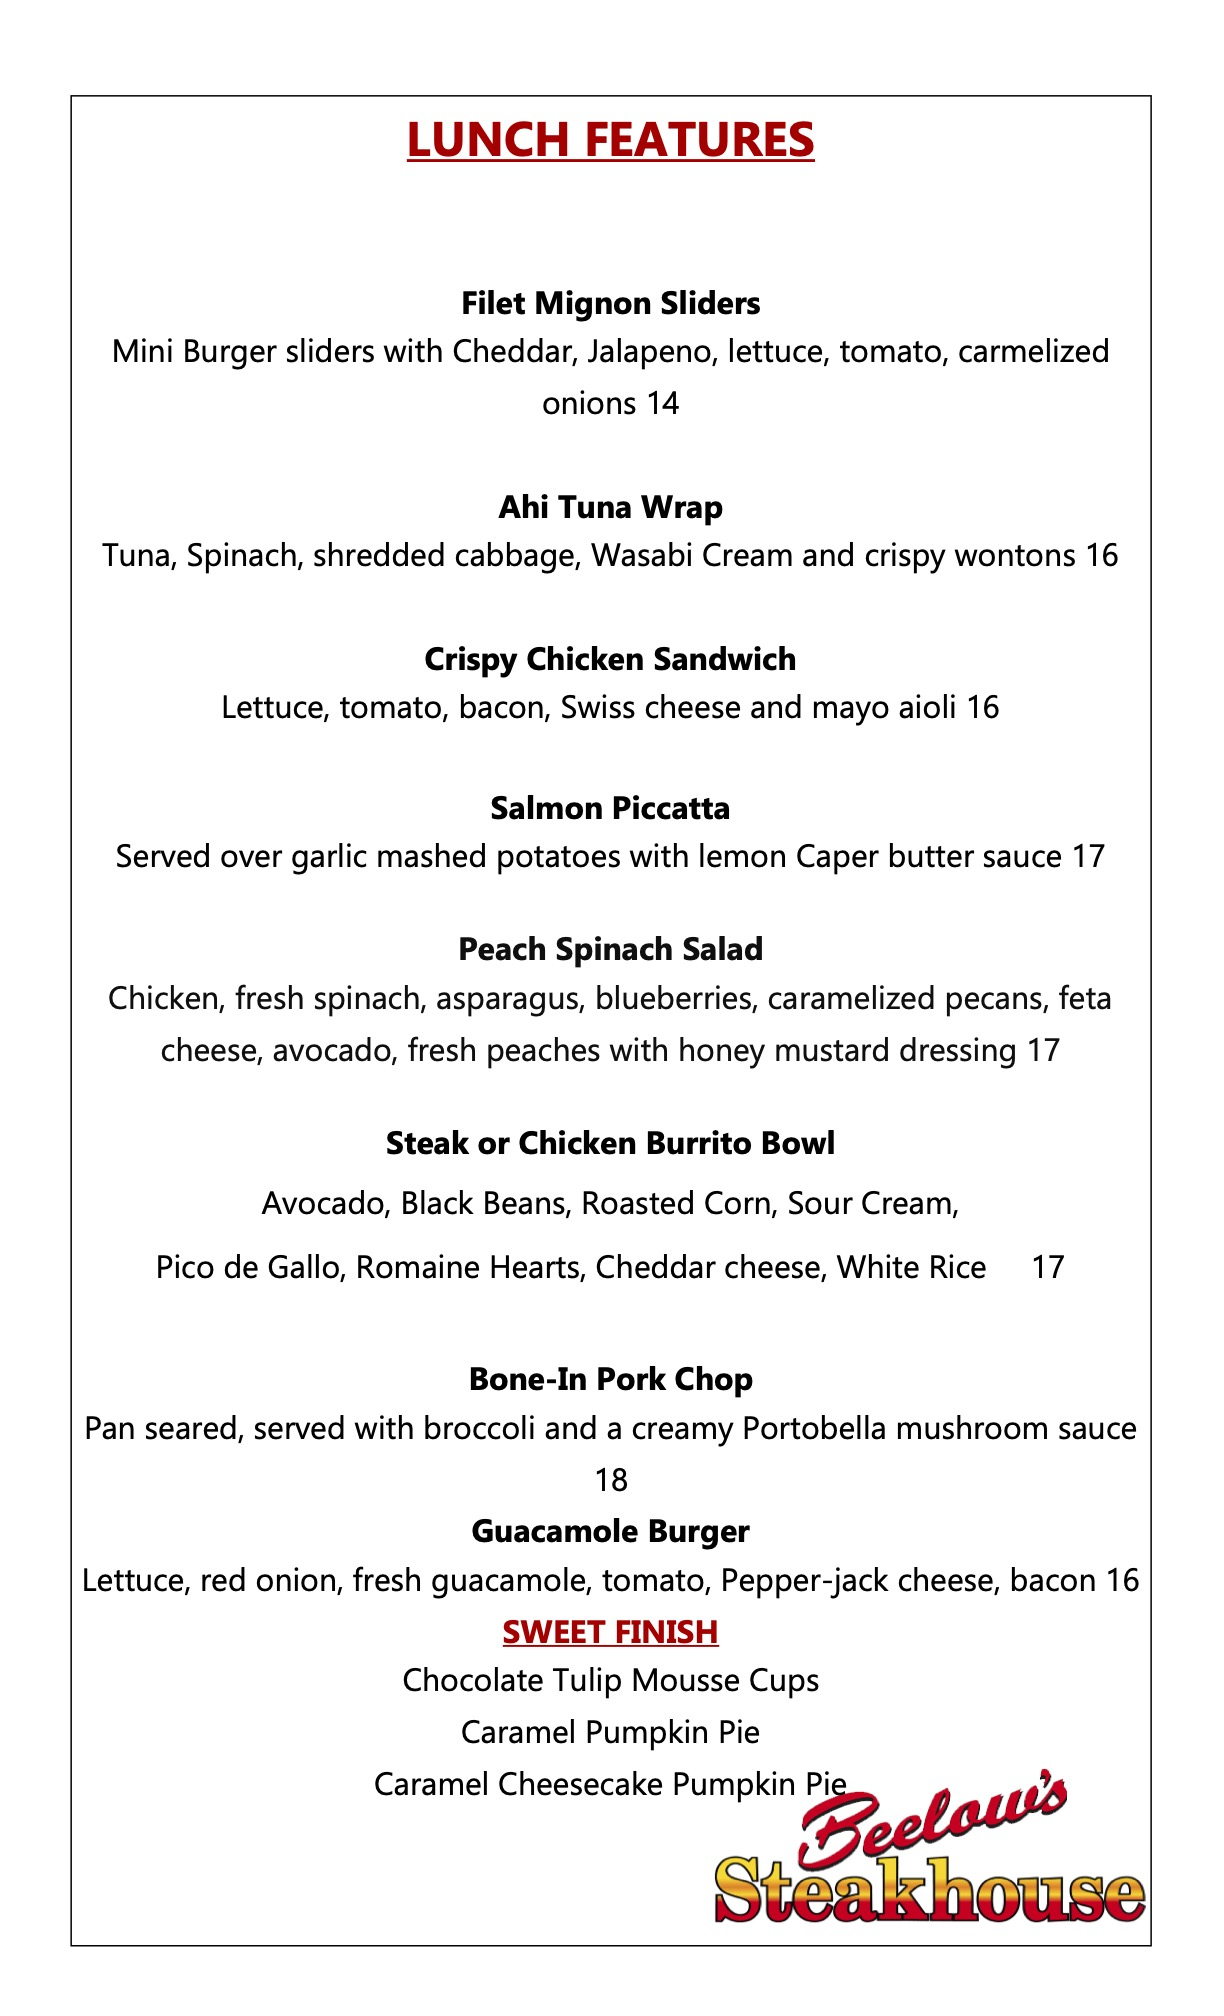 Lunch Features at Beelow's Steakhouse